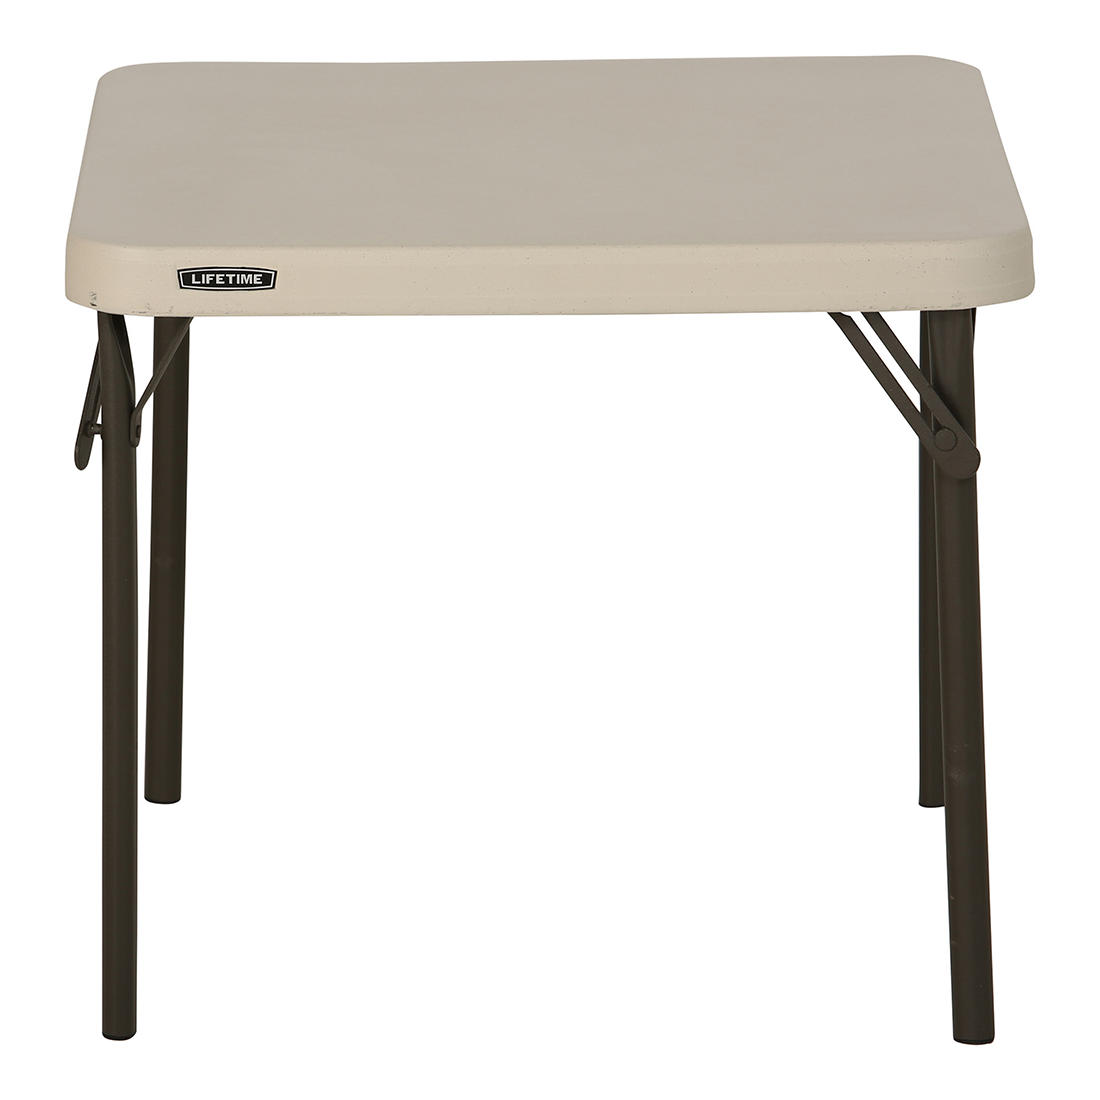 Wondrous Lifetime Childrens Square Folding Table Gmtry Best Dining Table And Chair Ideas Images Gmtryco